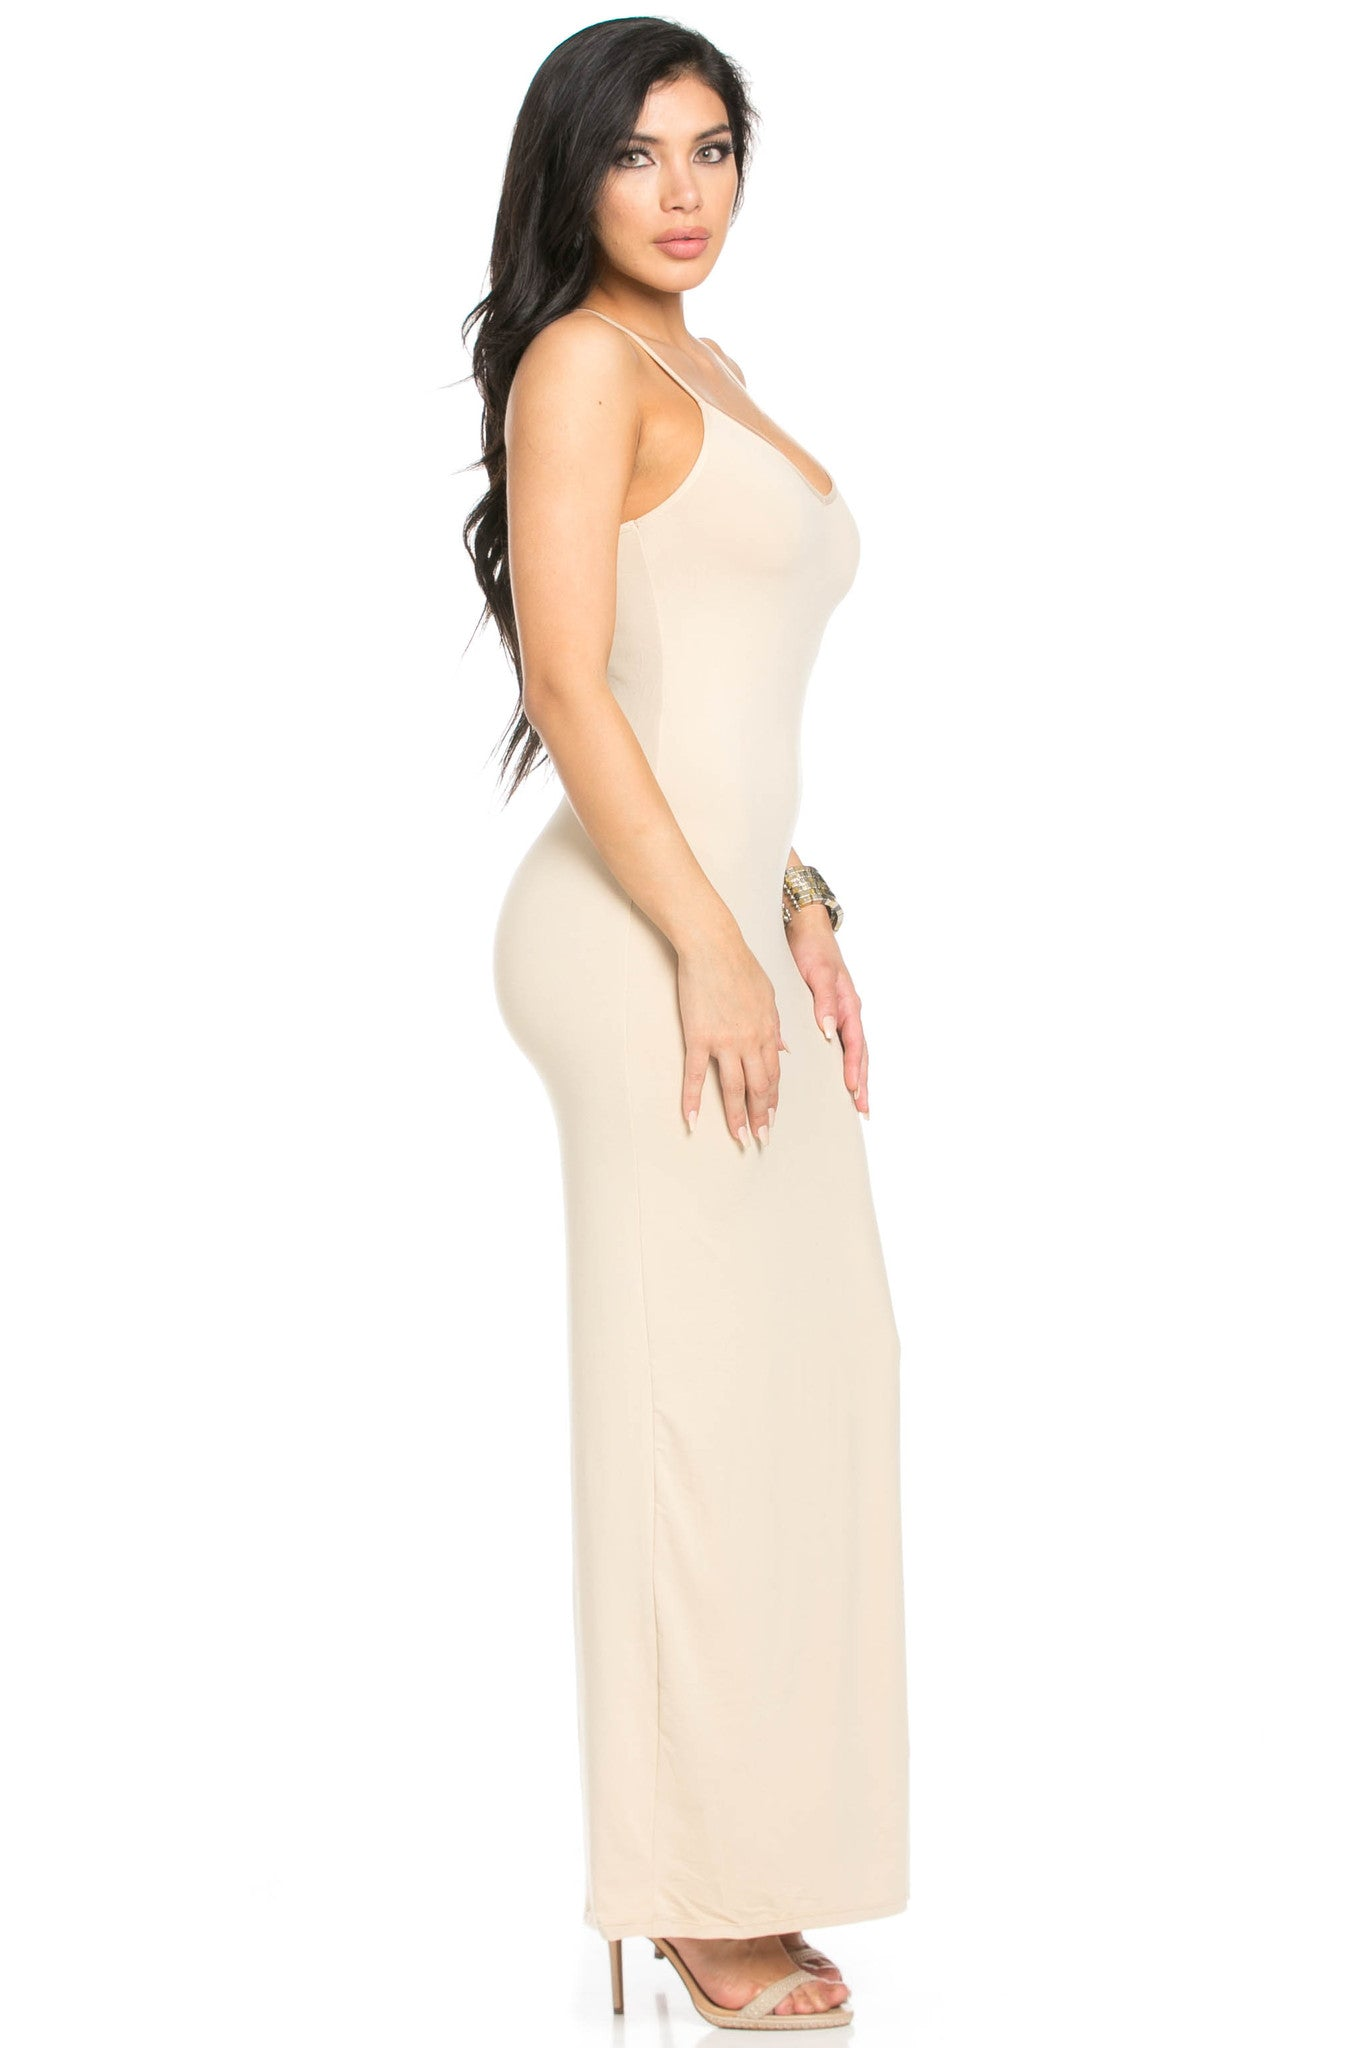 Micro Suede Khaki Maxi Dress - Dresses - My Yuccie - 5